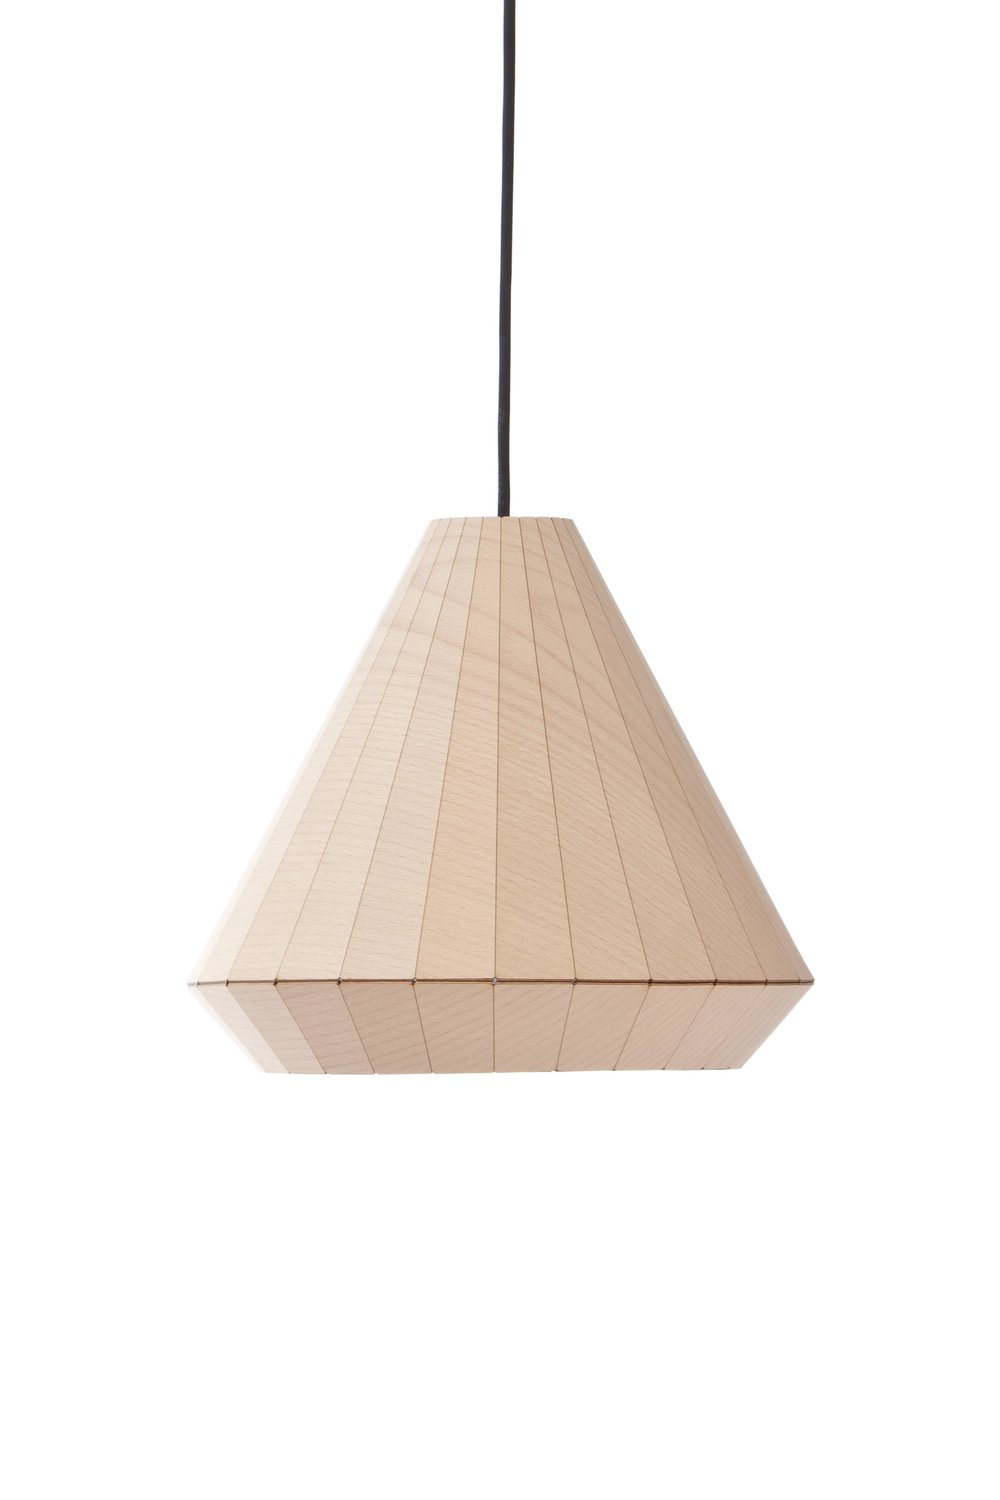 Vij5-Wooden-Light-02-2014-image-by-Vij5.jpeg